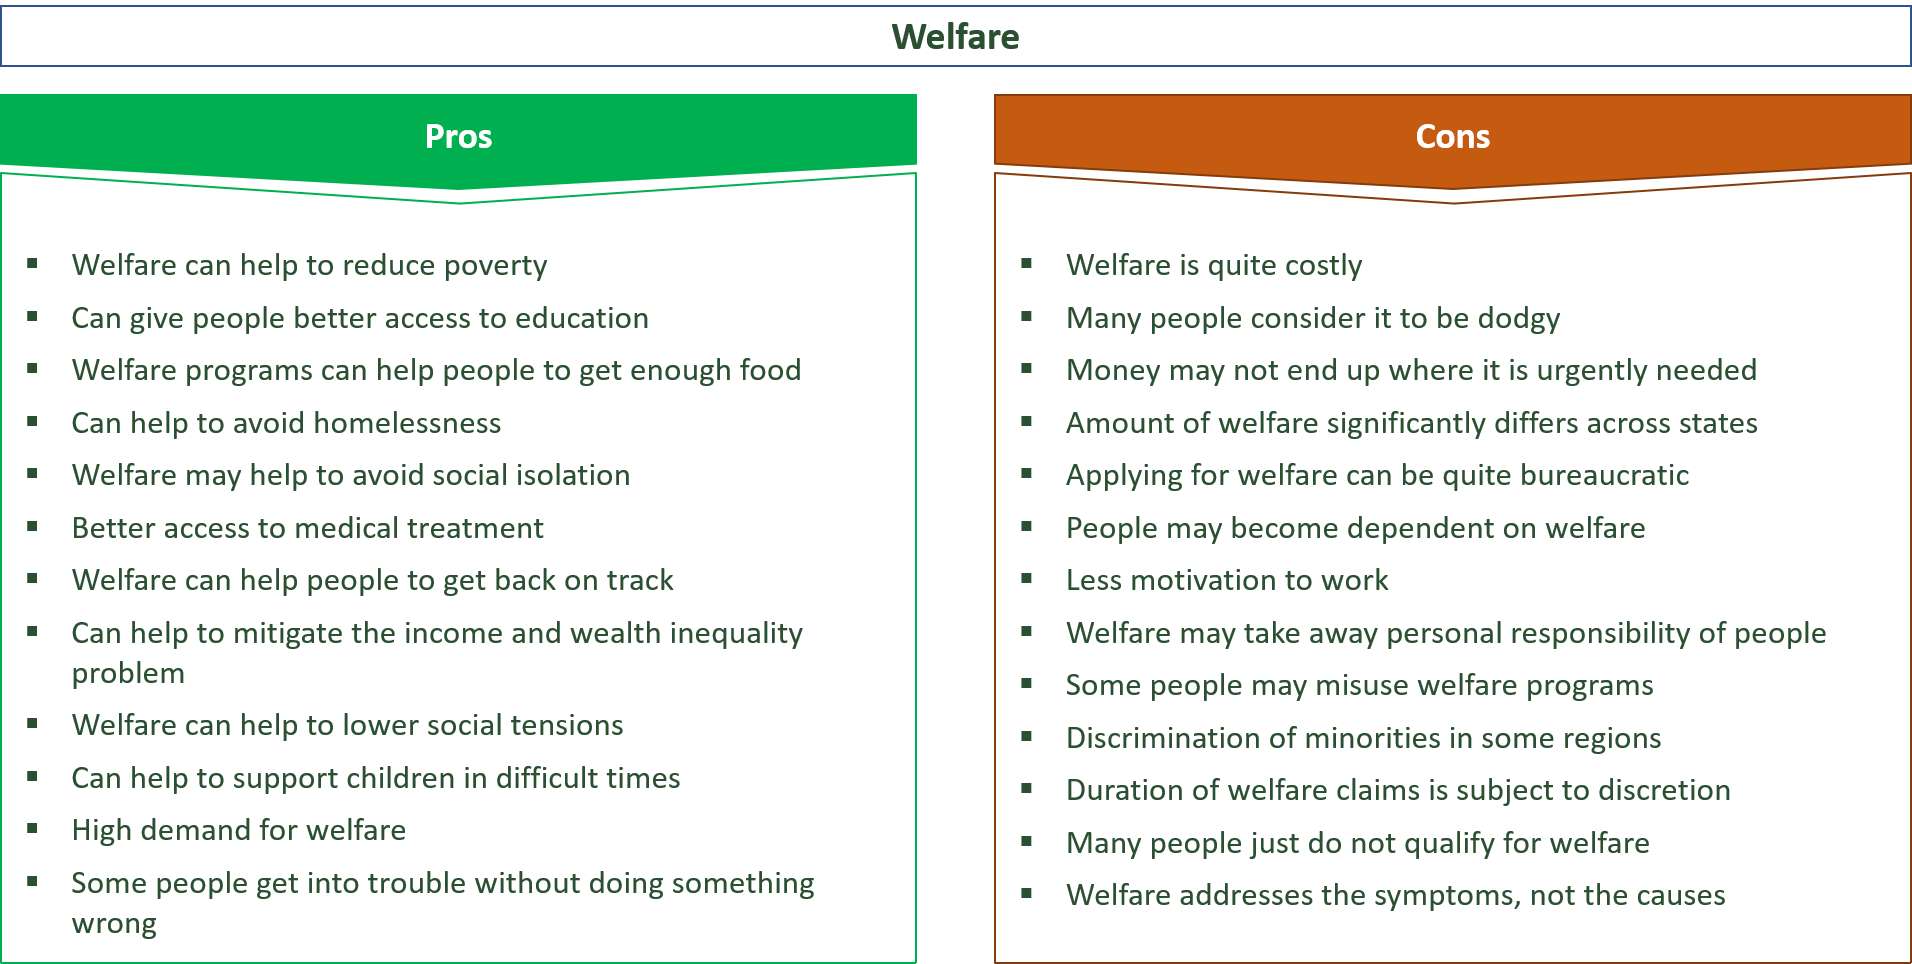 advantages and disadvantages of welfare